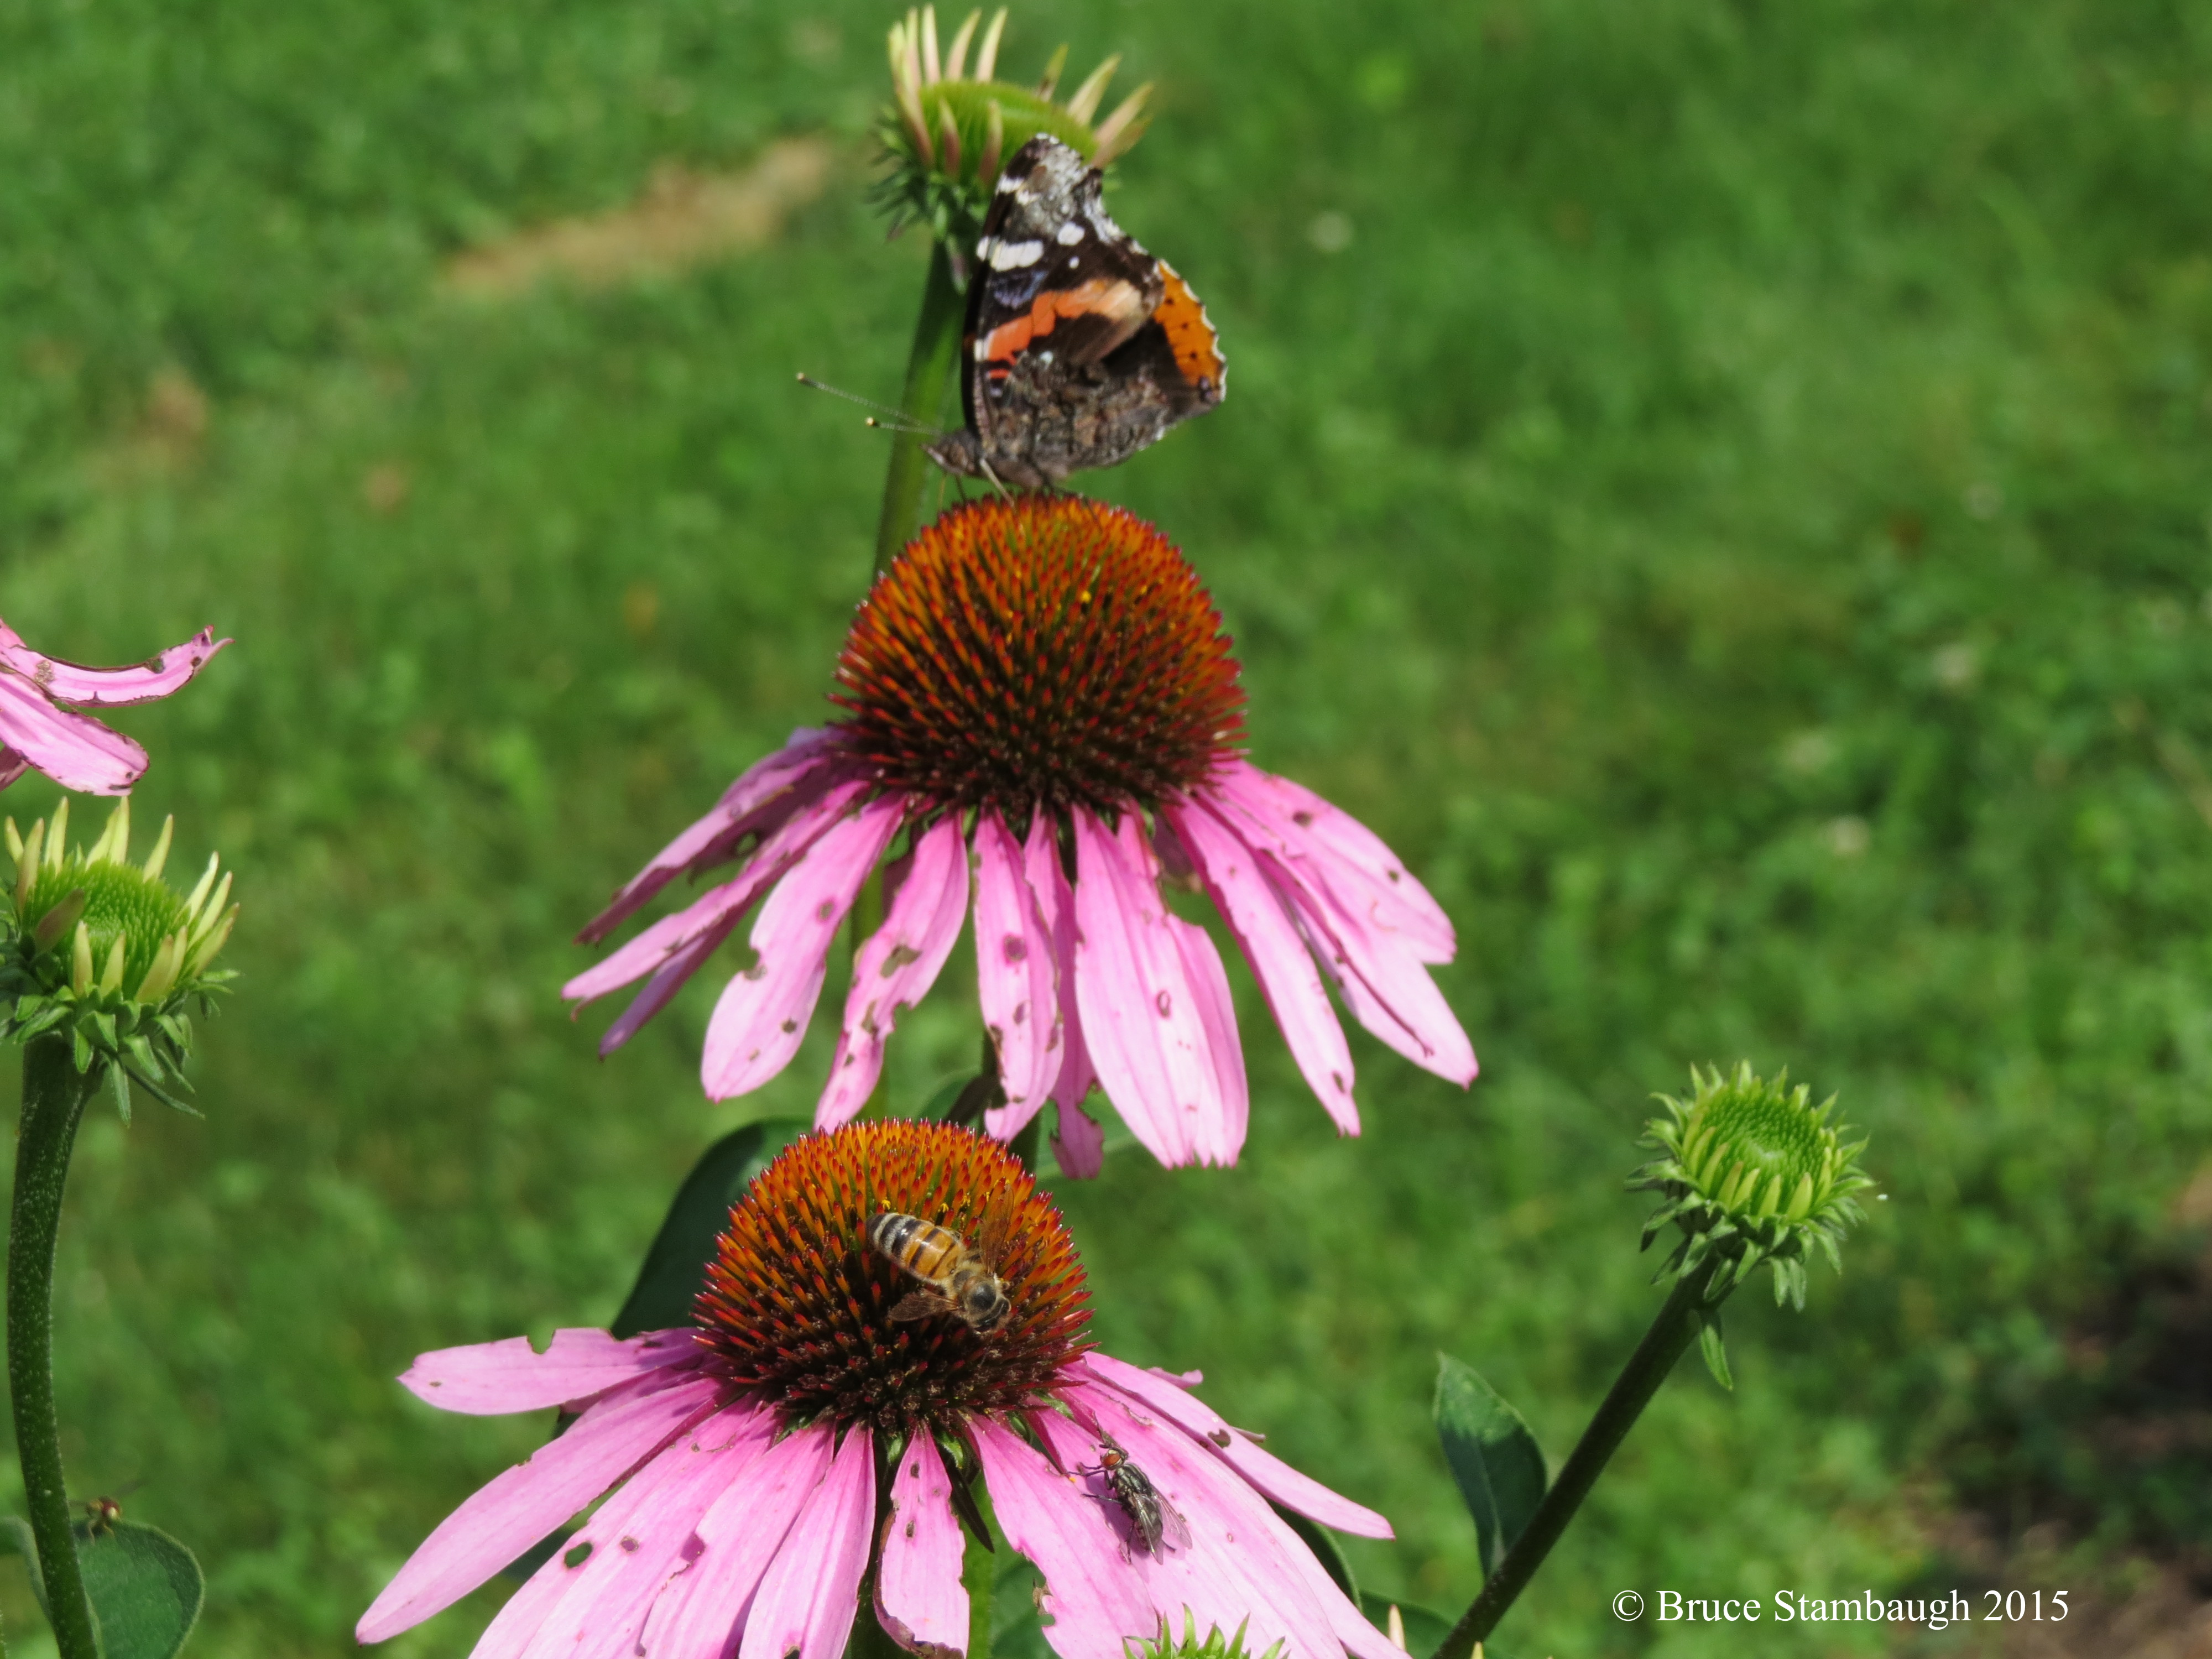 insects, coneflowers